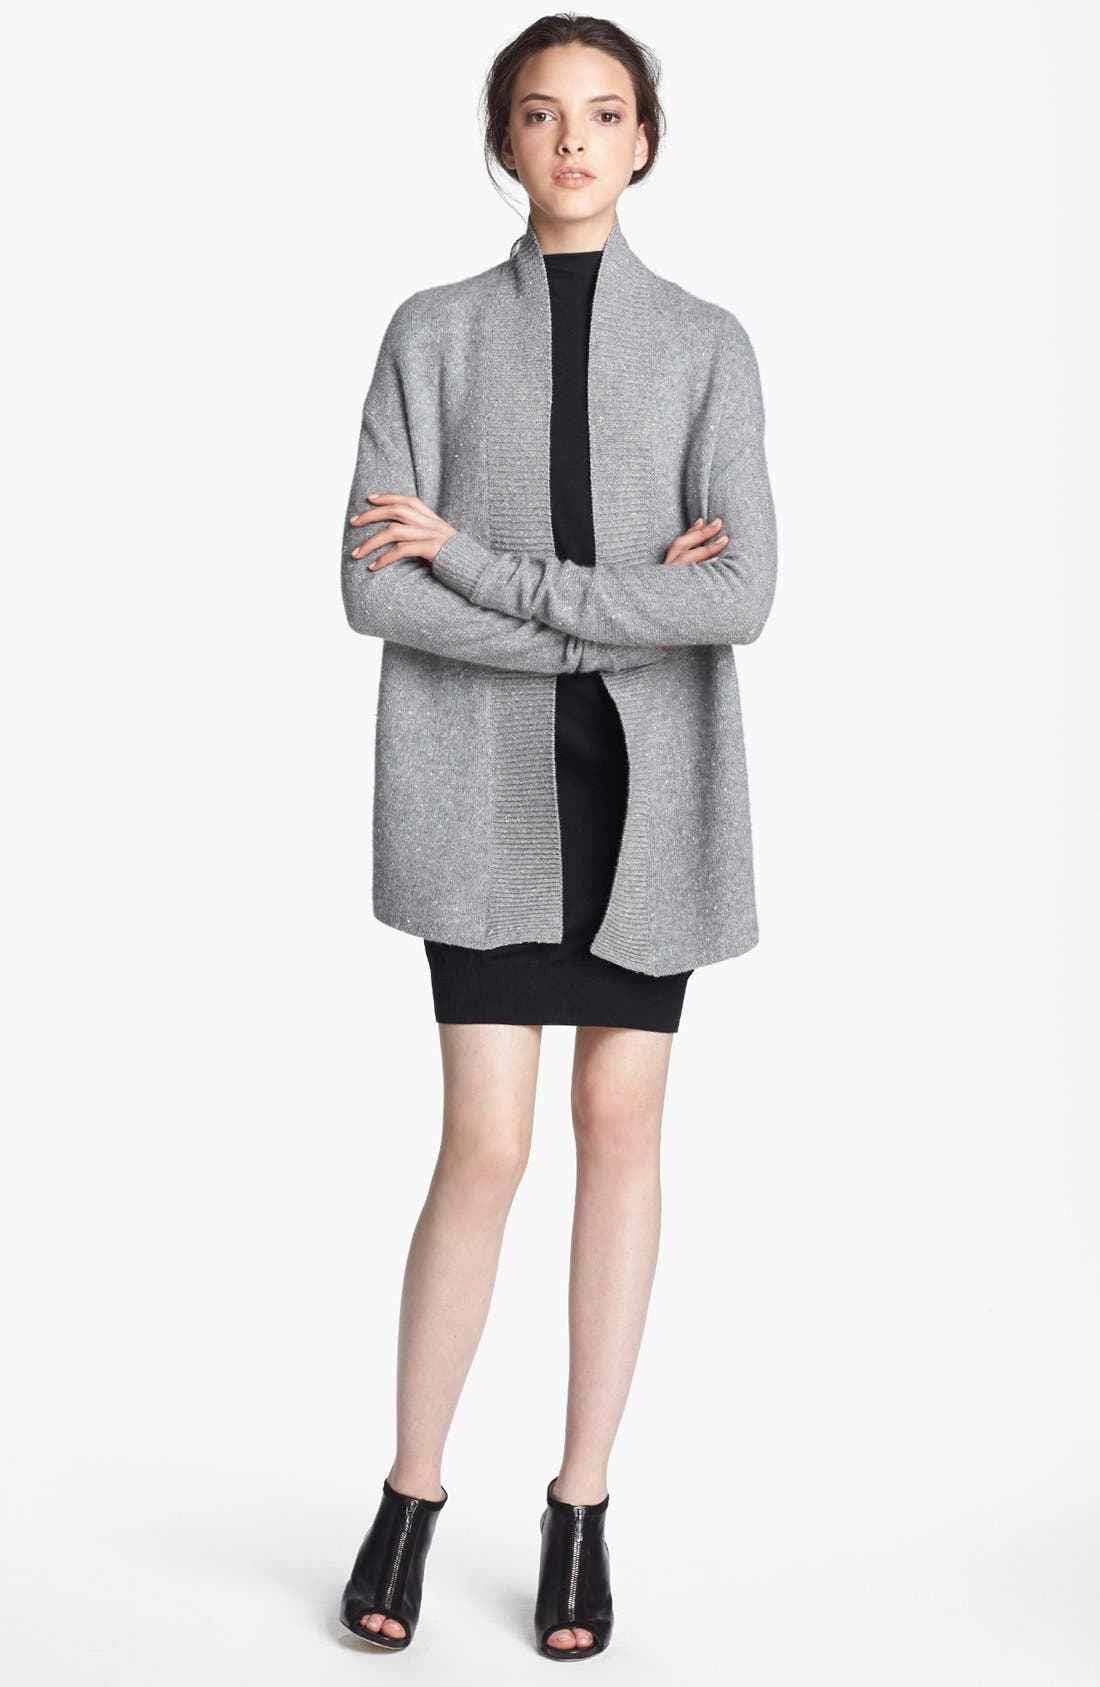 Alternate Image 1 Selected - Alexander Wang Donegal Tweed Knit Cardigan